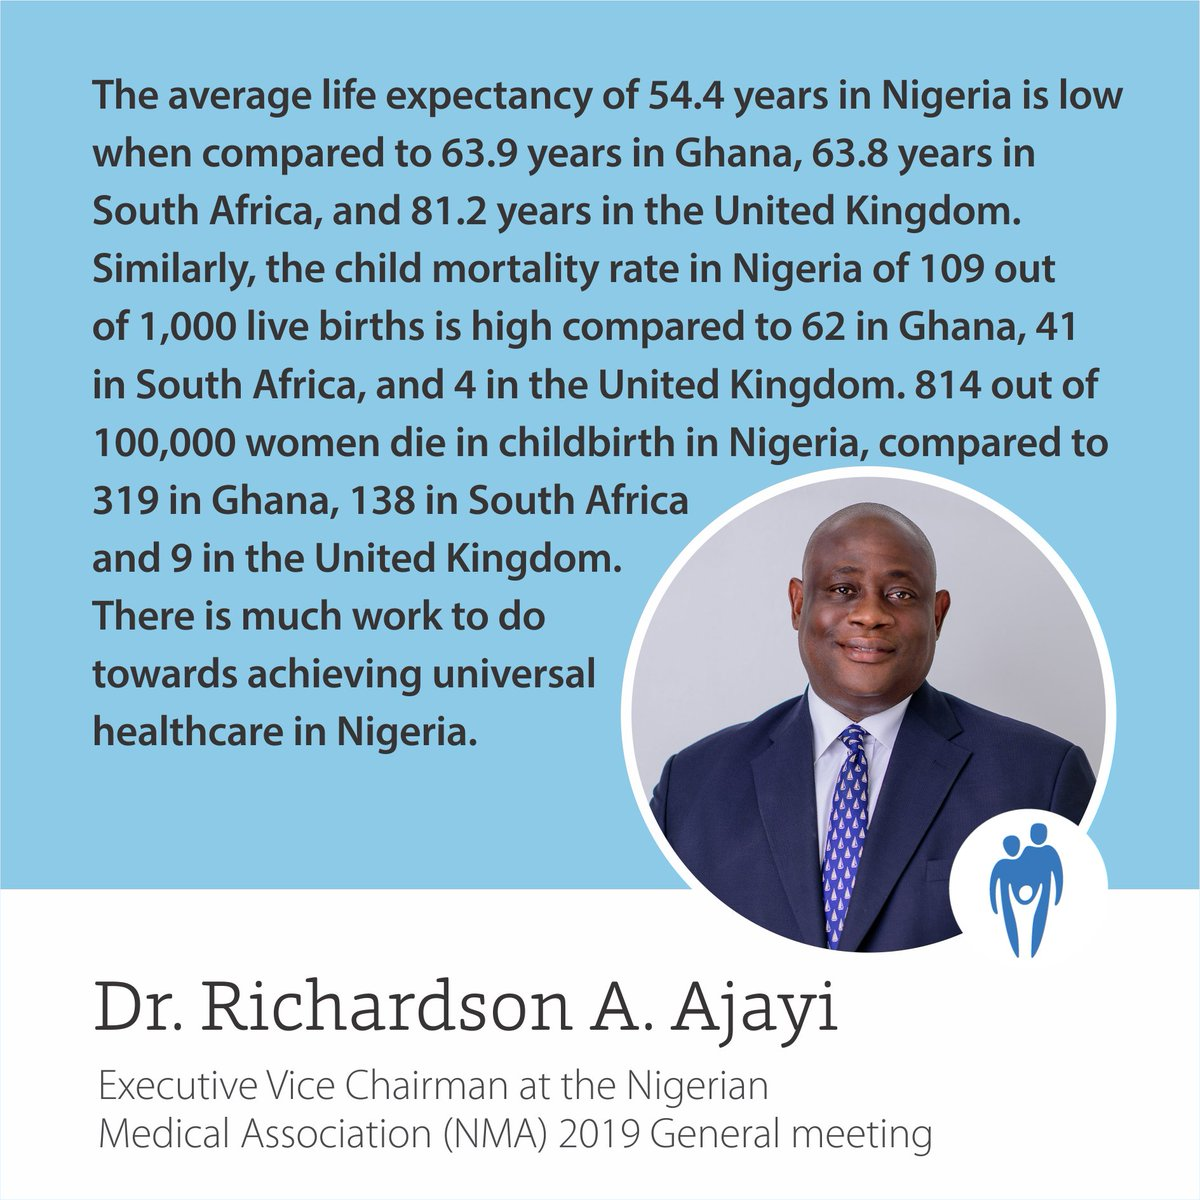 There is much work to do towards achieving universal healthcare in Nigeria #transforminghealthcaretogether https://t.co/BaUnLFXS0p